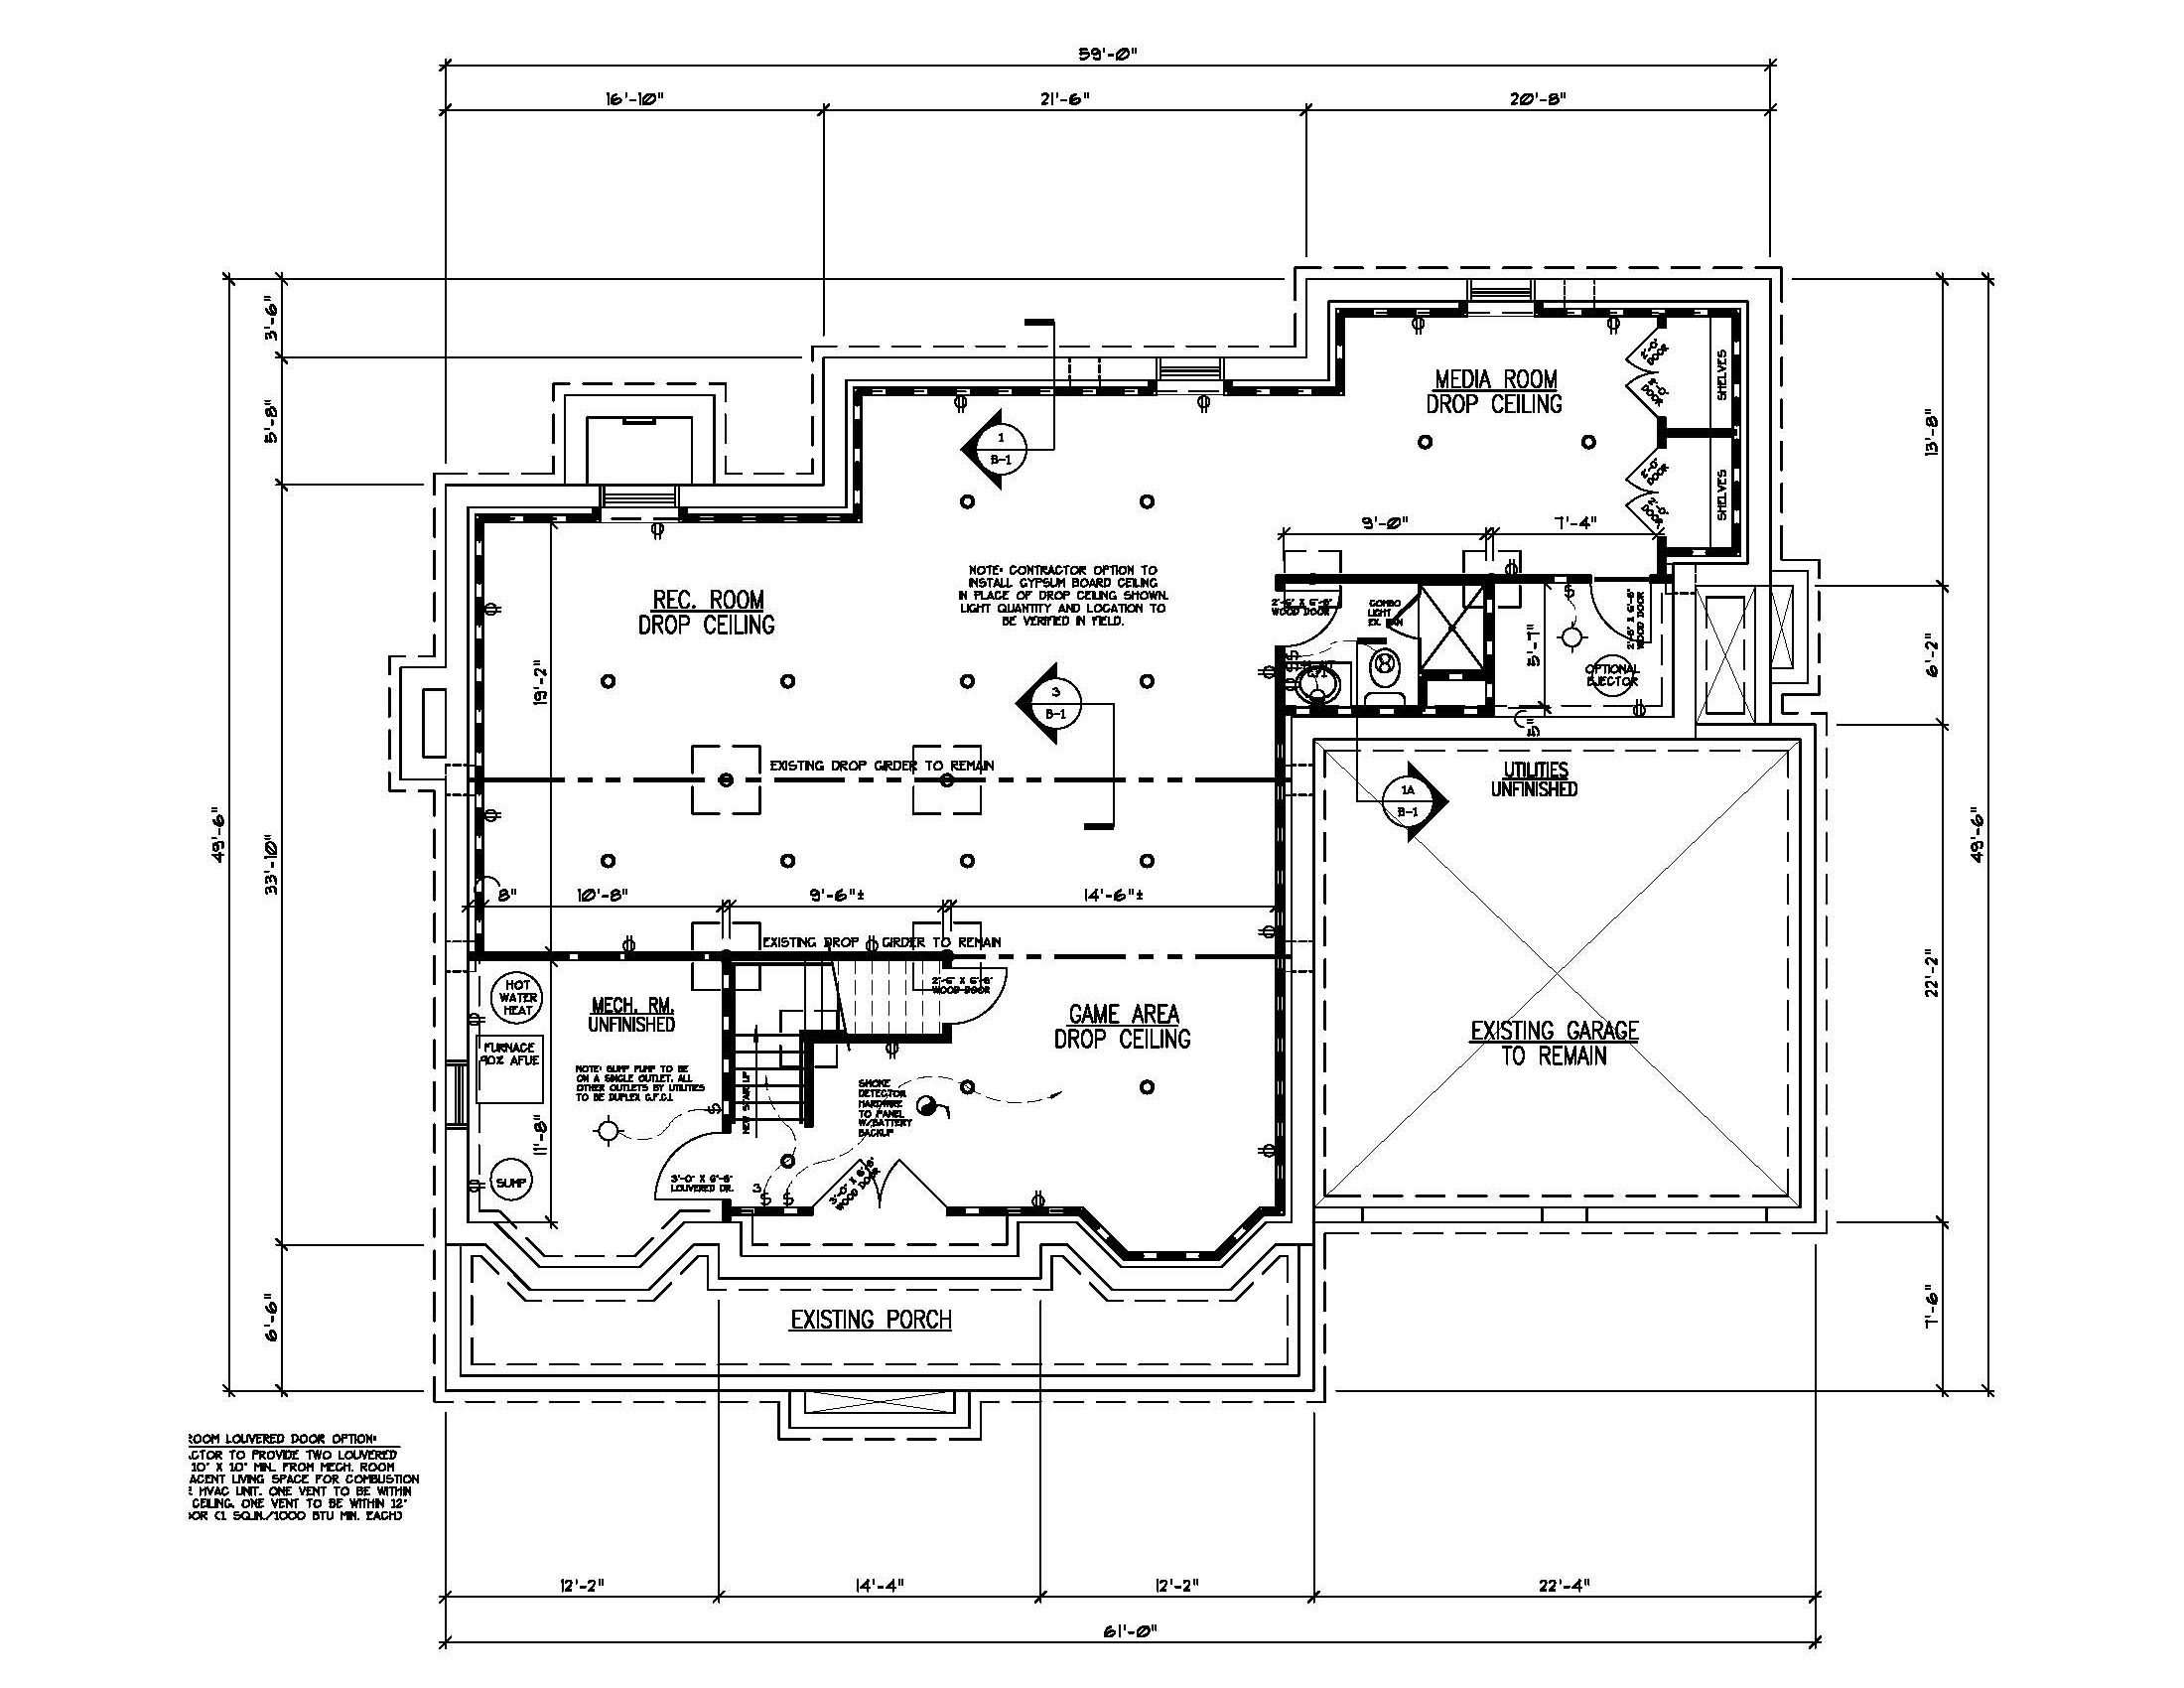 211 Golf Edge Basement Plan